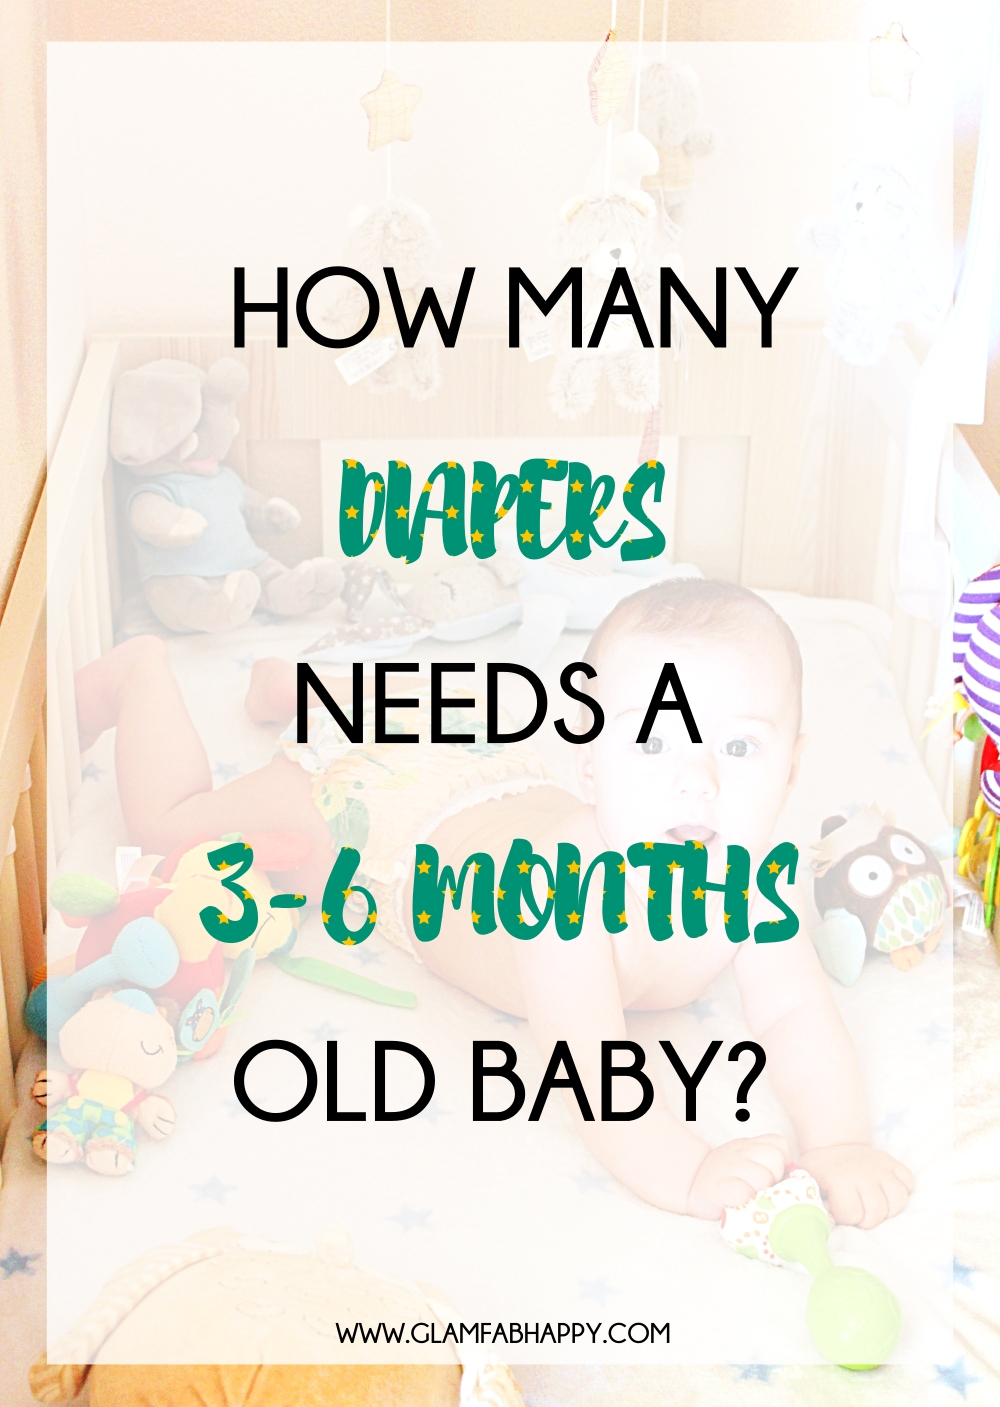 how many dipers/nappies needs a 3-6 months old baby; new mom baby essentials checklist